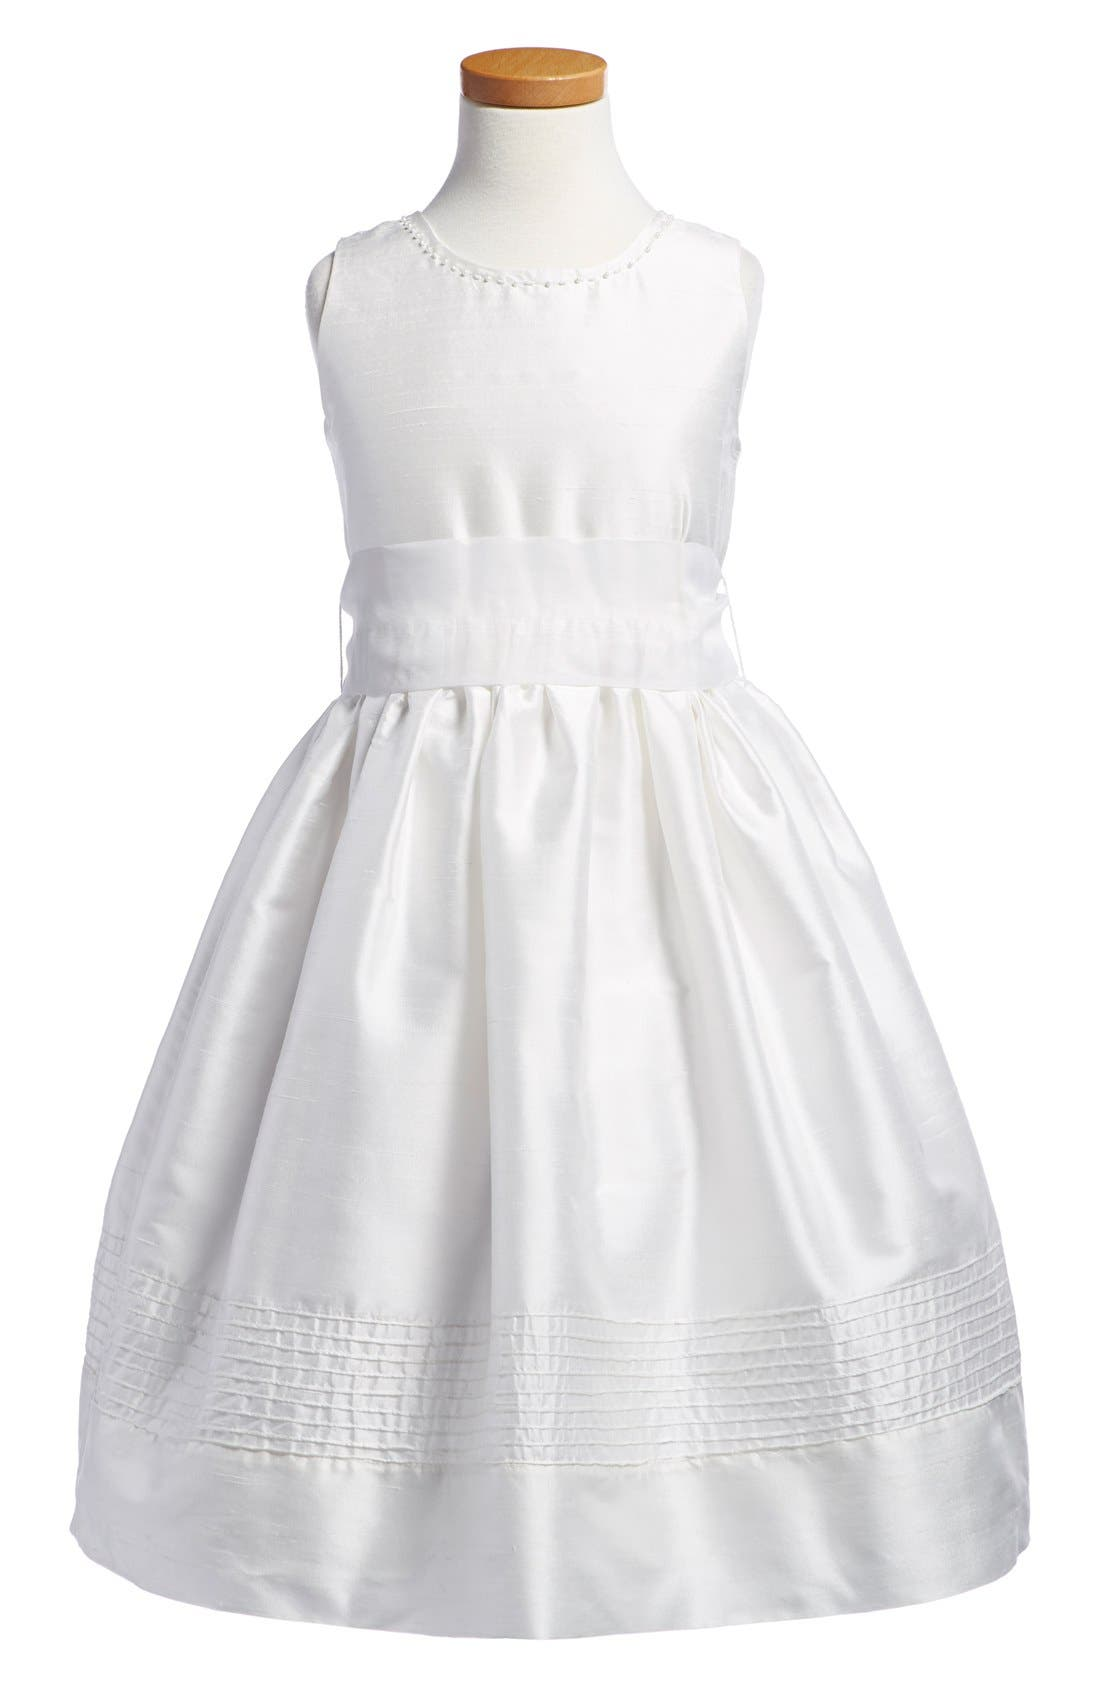 ISABEL GARRETON 'Melody' Sleeveless Dress